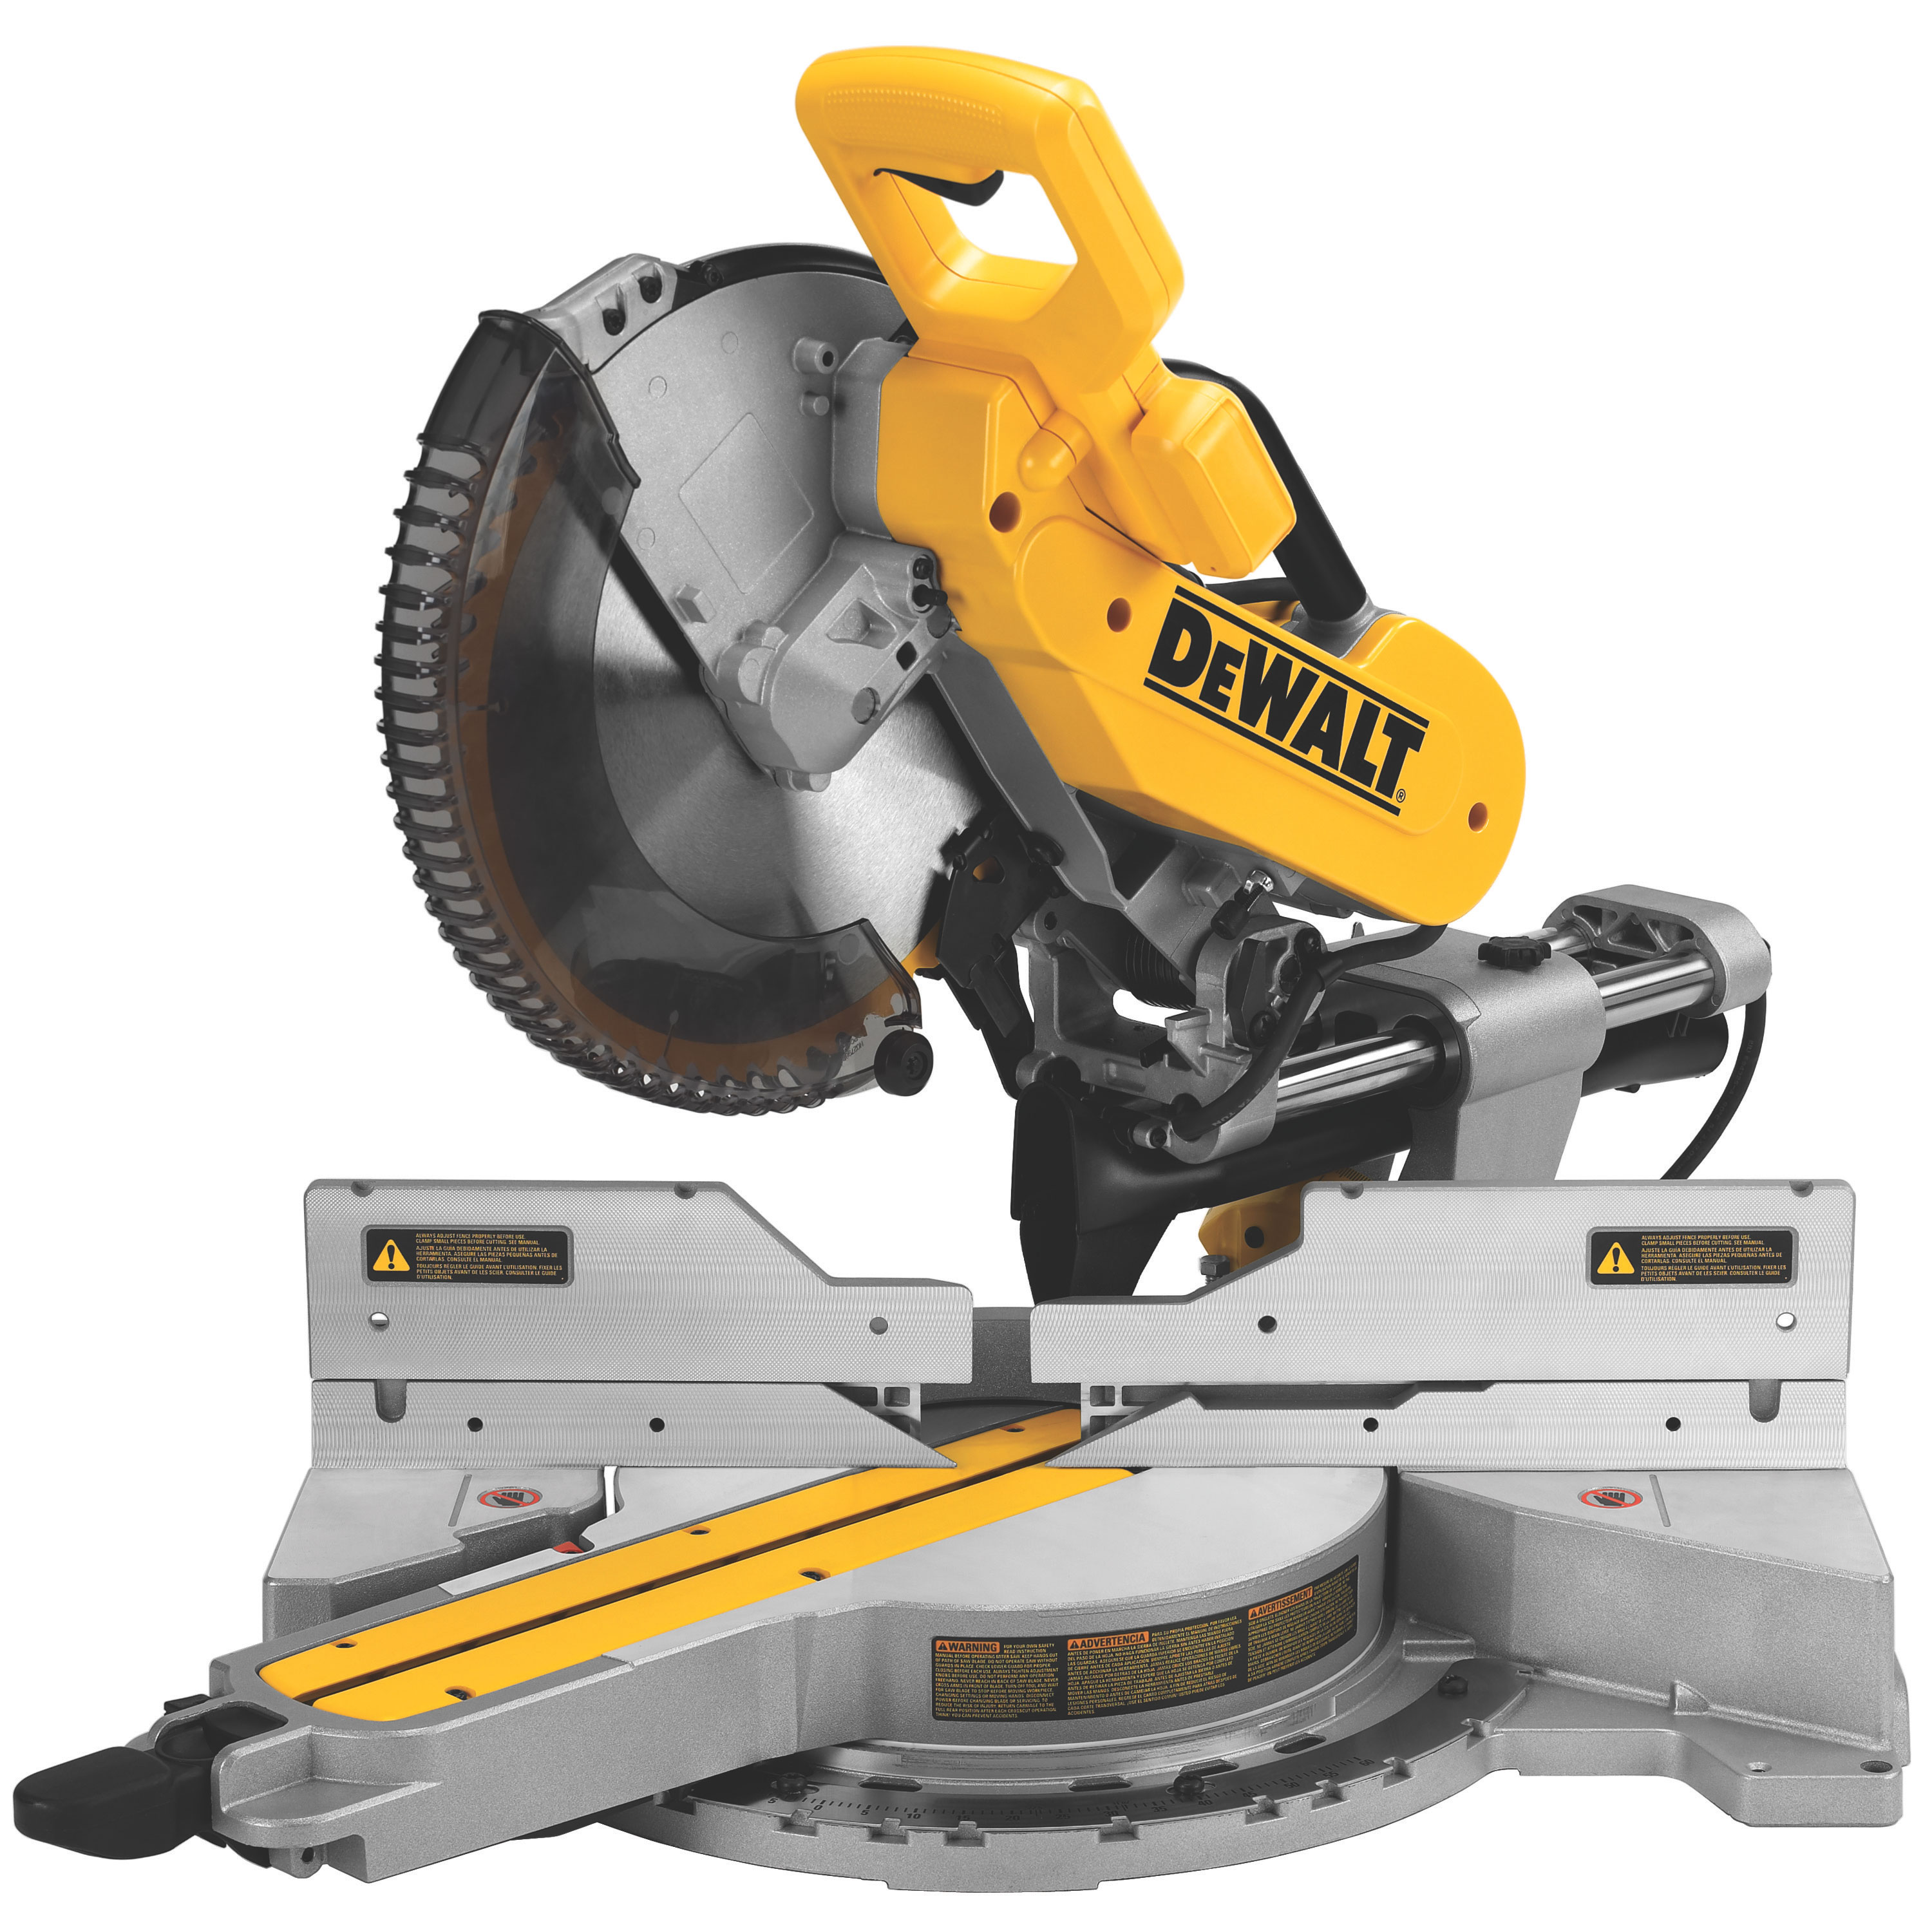 DeWalt Mitre Saw Spares and Parts